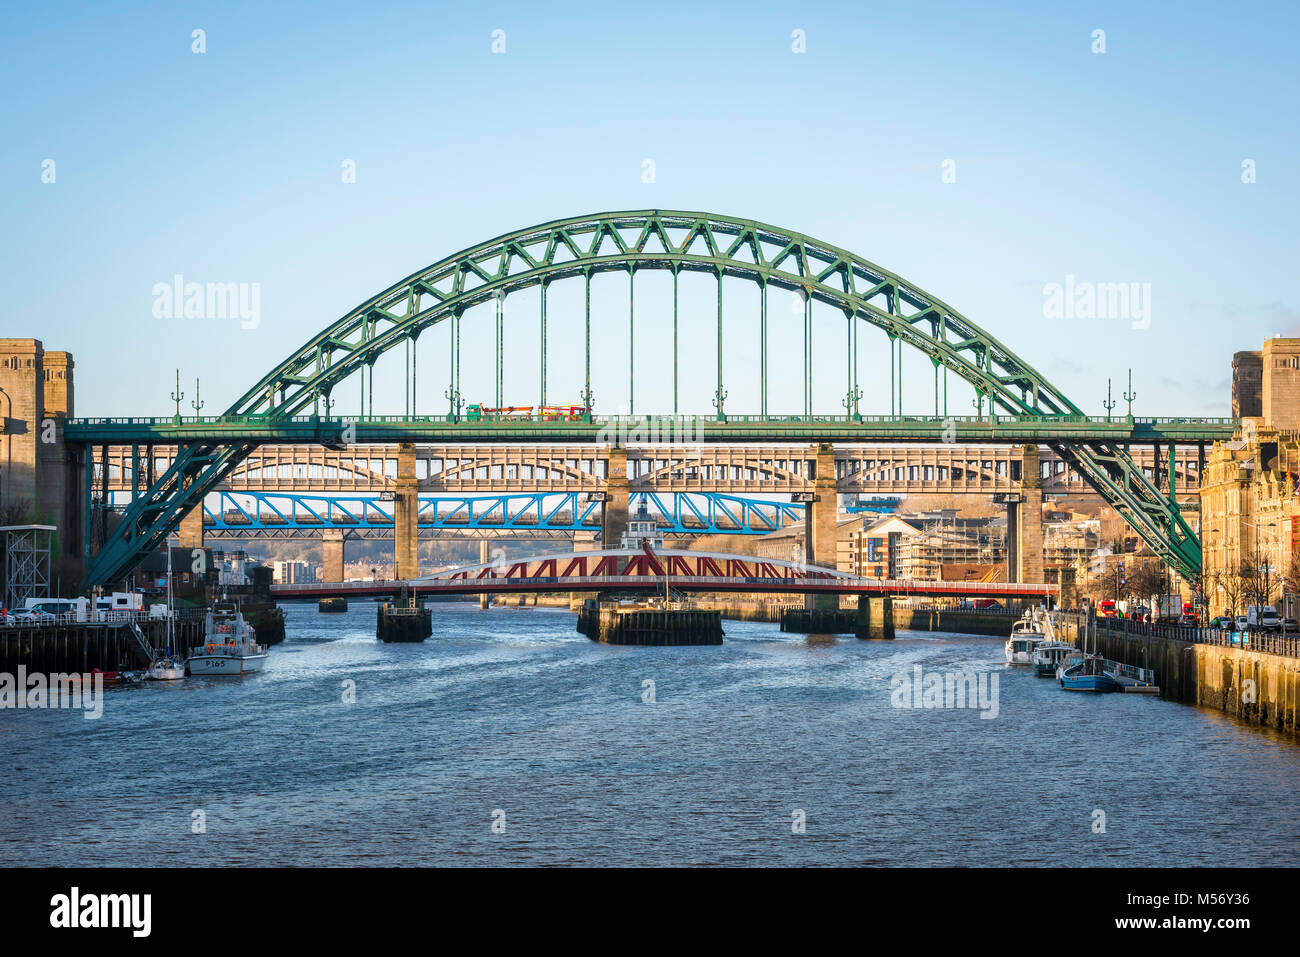 Newcastle upon Tyne, view of five bridges spanning the River Tyne in the centre of Newcastle, Tyne And Wear, England, Stock Photo